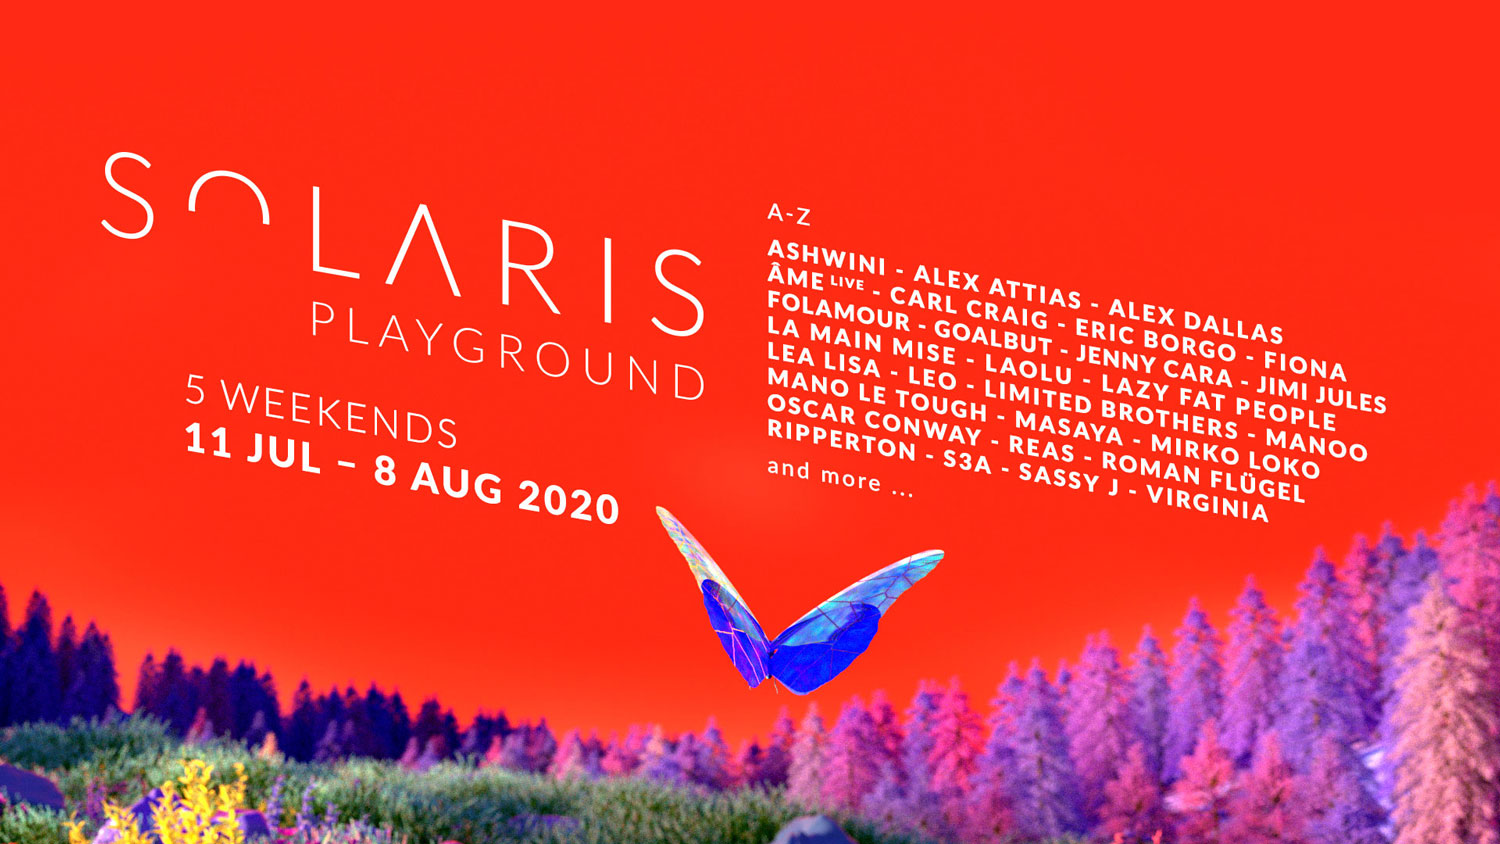 SOLARIS | Line Up 2020